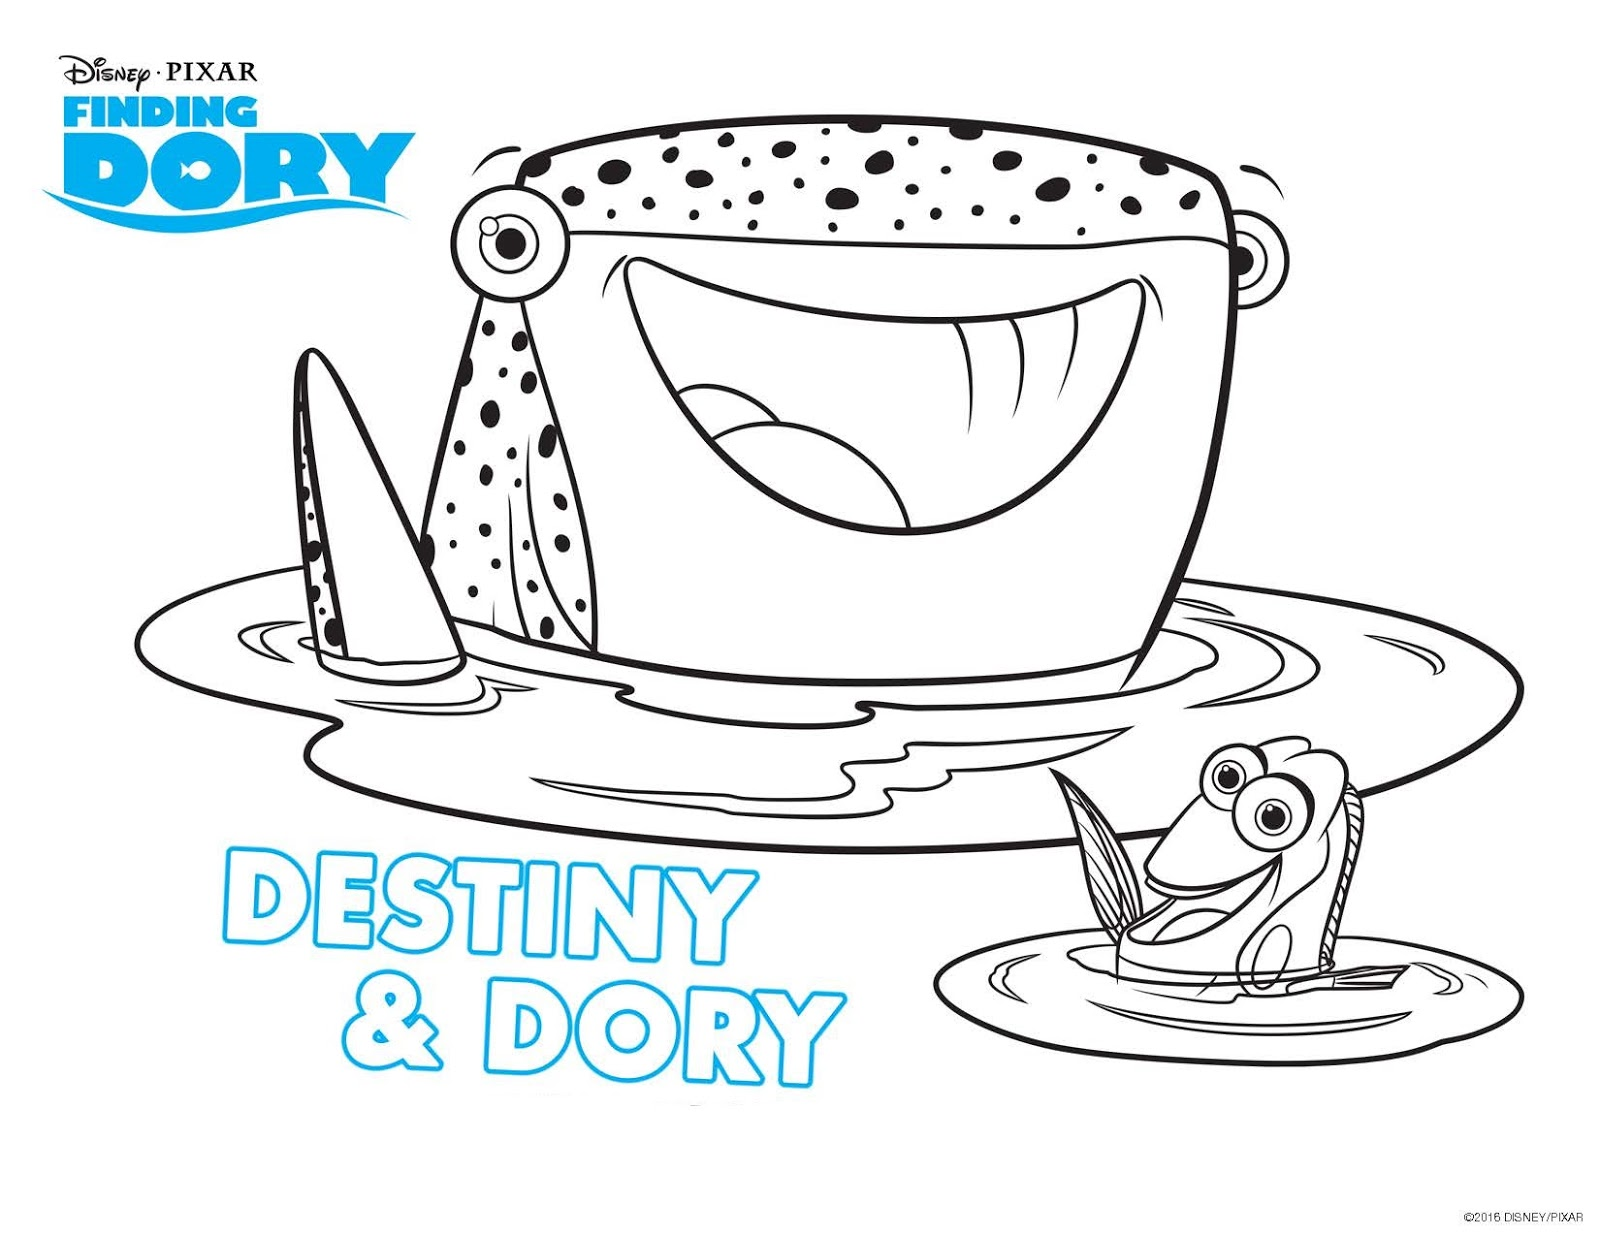 Coloring pages for dory - Dory Finding Dory Nemo Bailey Hank Color Hank Color Dory